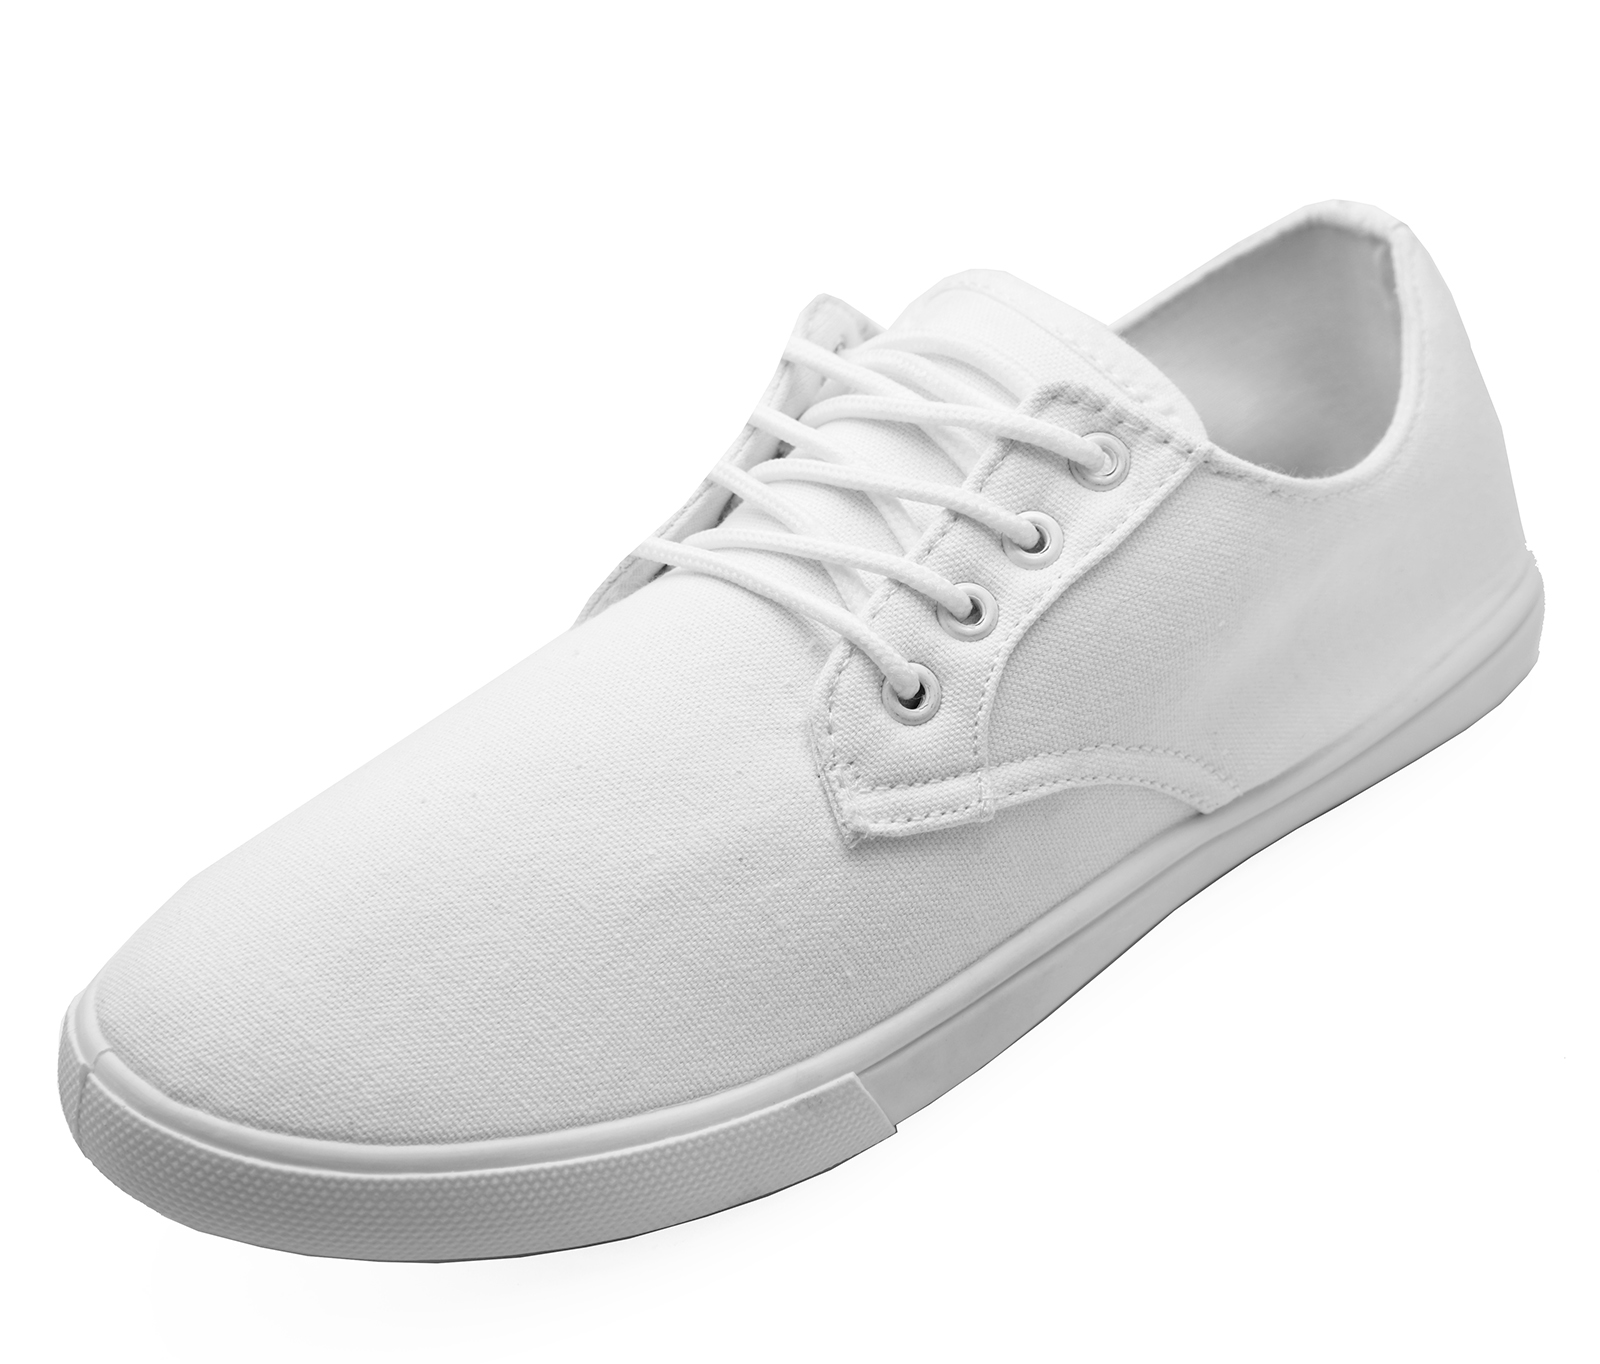 MENS-LACE-UP-WHITE-CANVAS-FLAT-TRAINER-PLIMSOLL-PUMPS-CASUAL-SHOES-SIZES-6-12 thumbnail 16